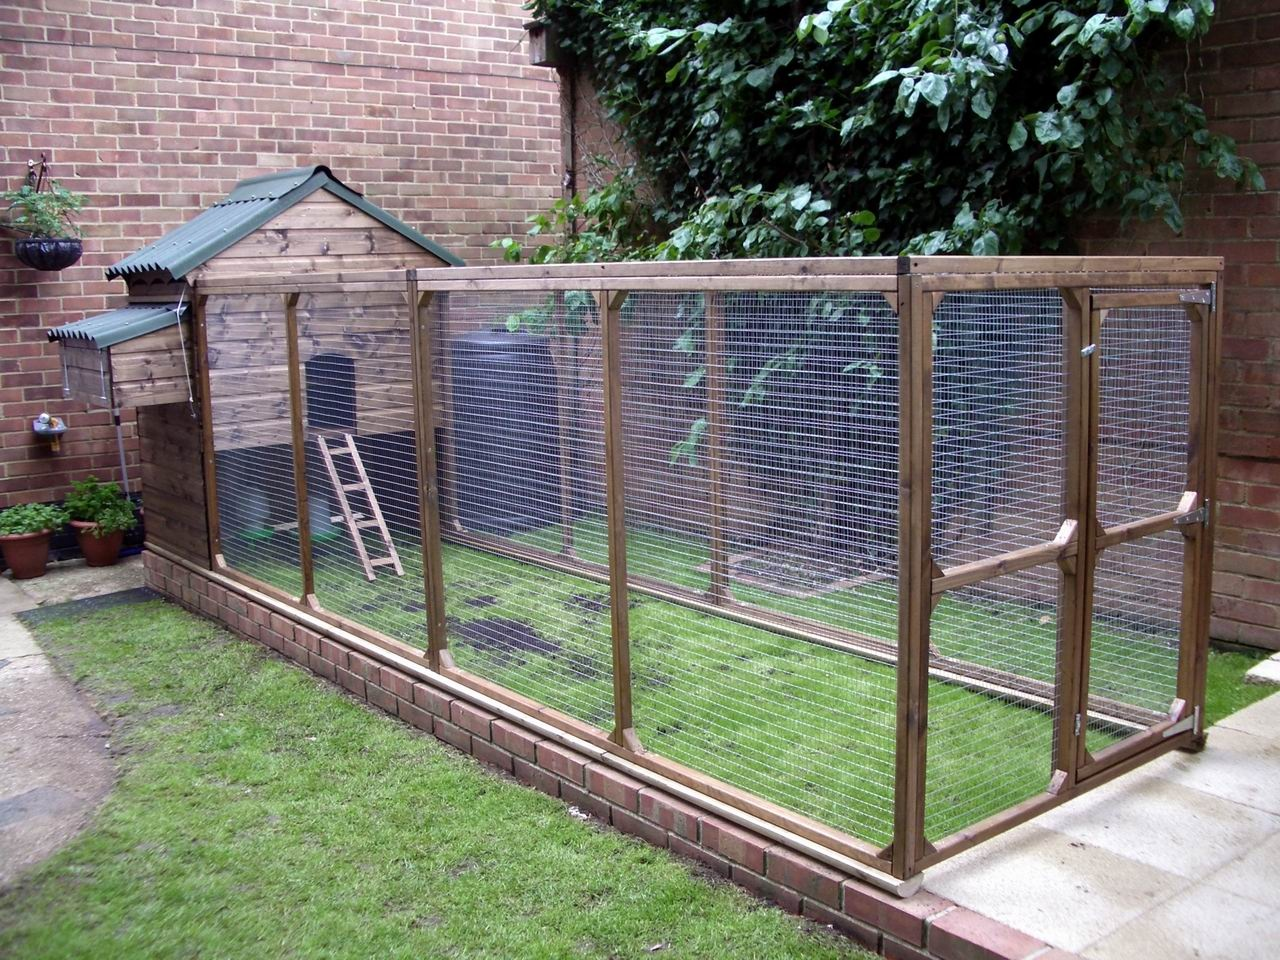 Hobby chicken make chicken coop predator proof must see for Chicken enclosure ideas